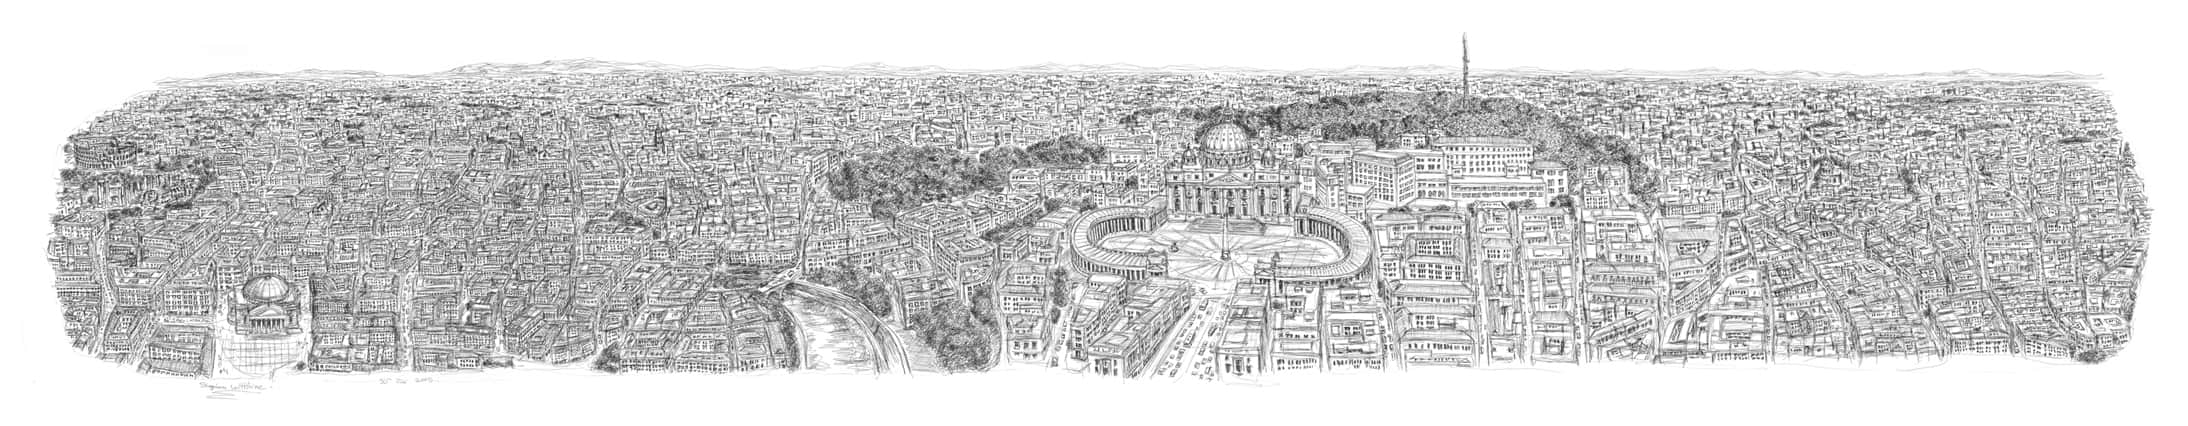 rome_panorama_by_stephen_wiltshire